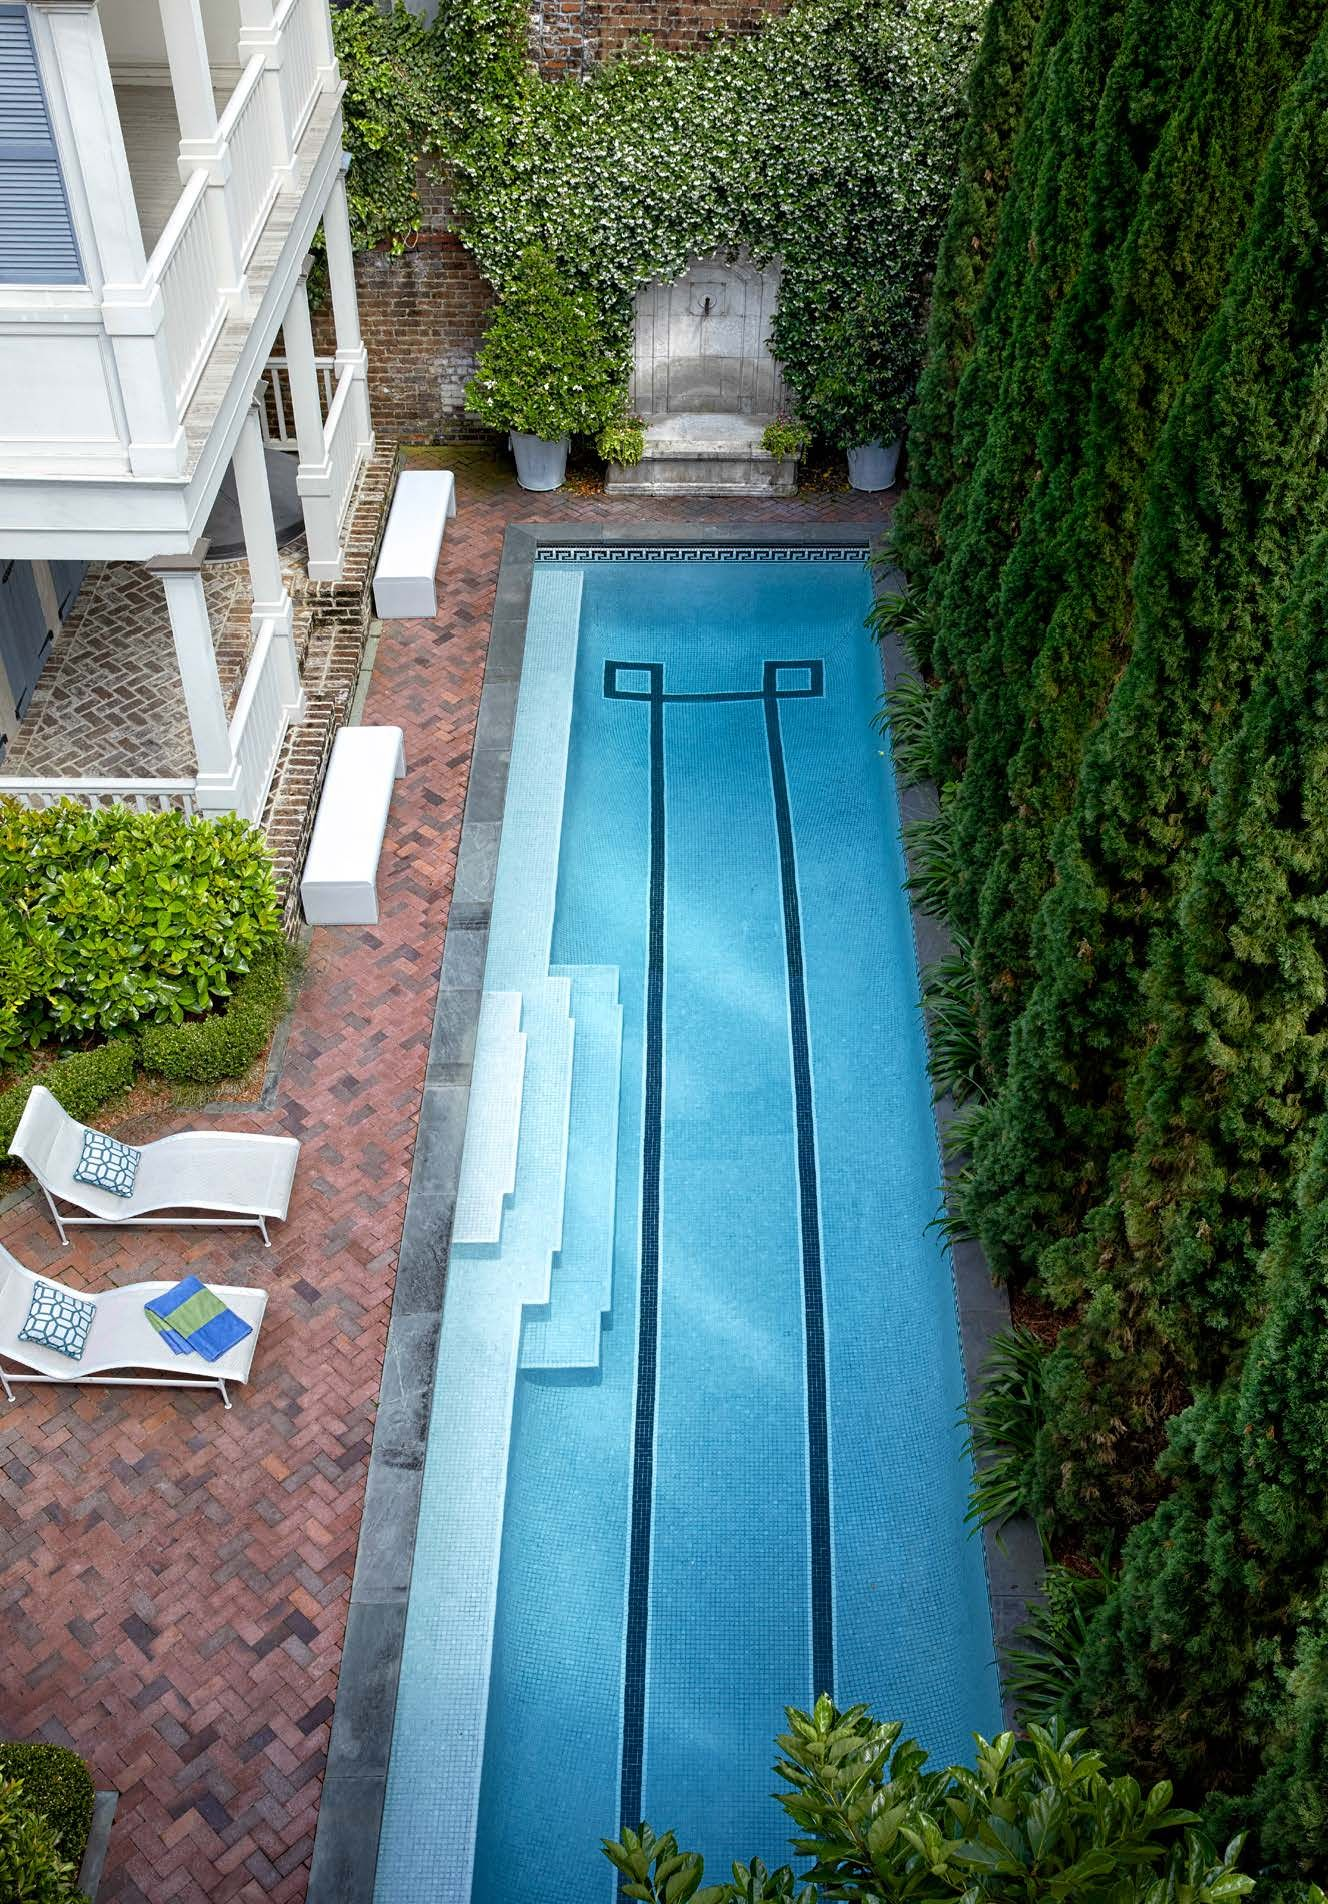 44 Stunning Swimming Pool Designs Ideas For In Ground Pools